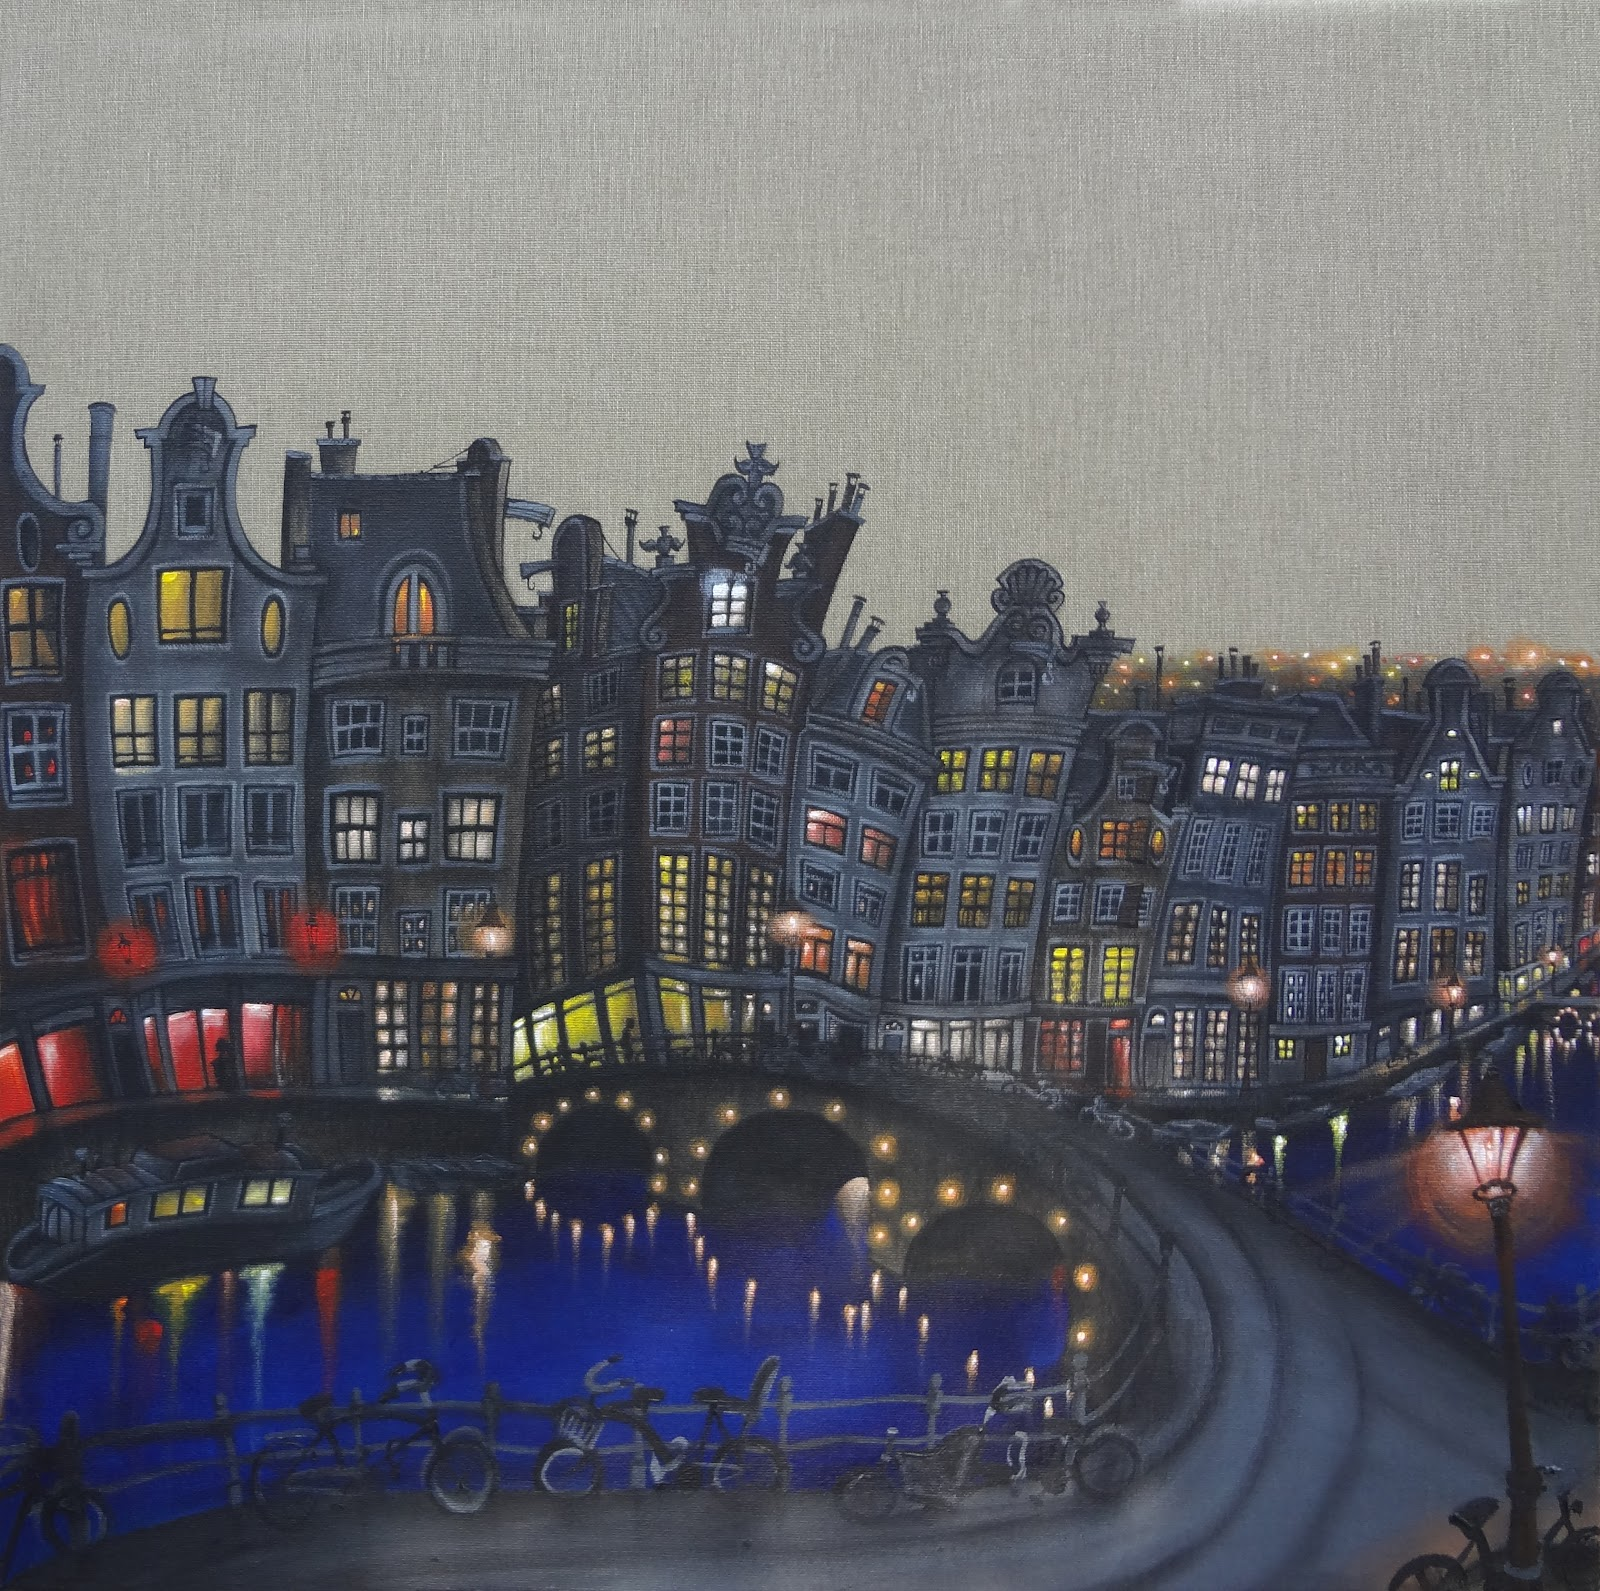 Amsterdam at night #2